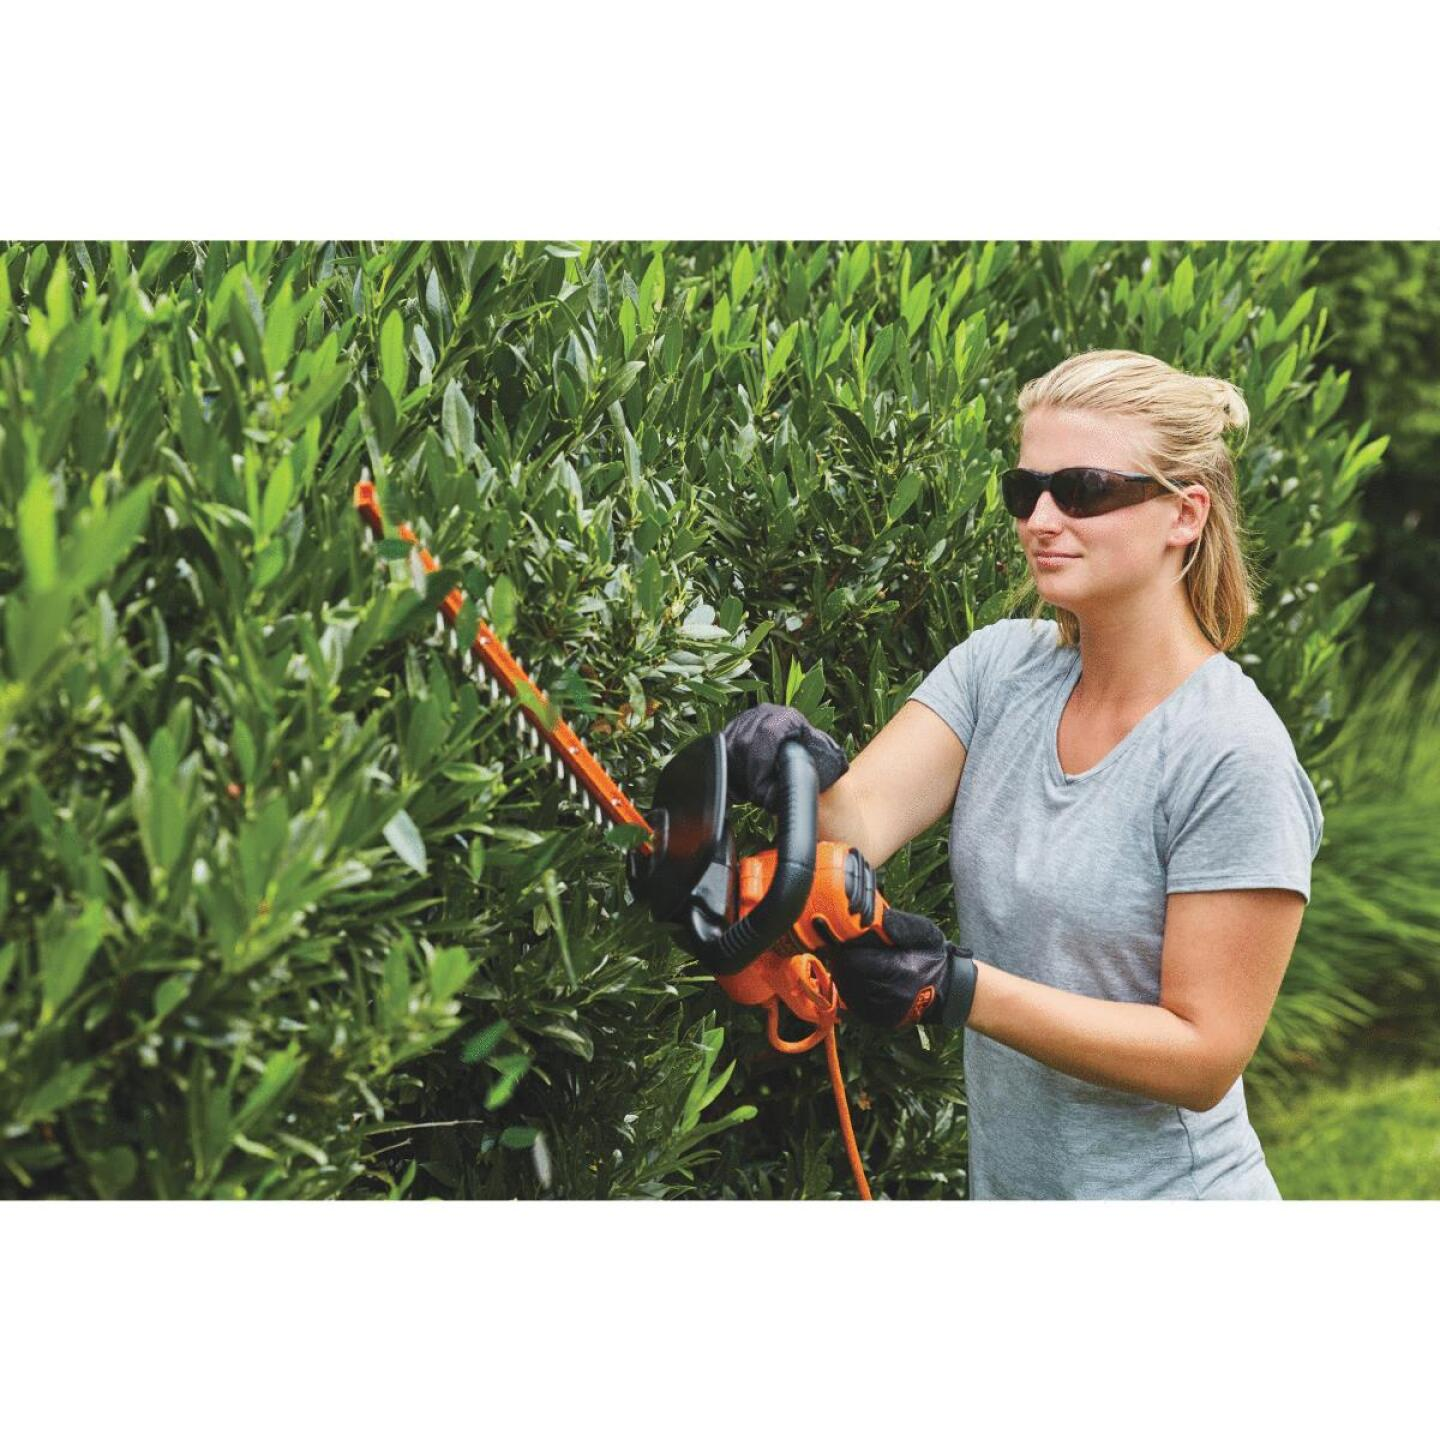 Black & Decker 18 In. 3.5-Amp Corded Electric Hedge Trimmer Image 5